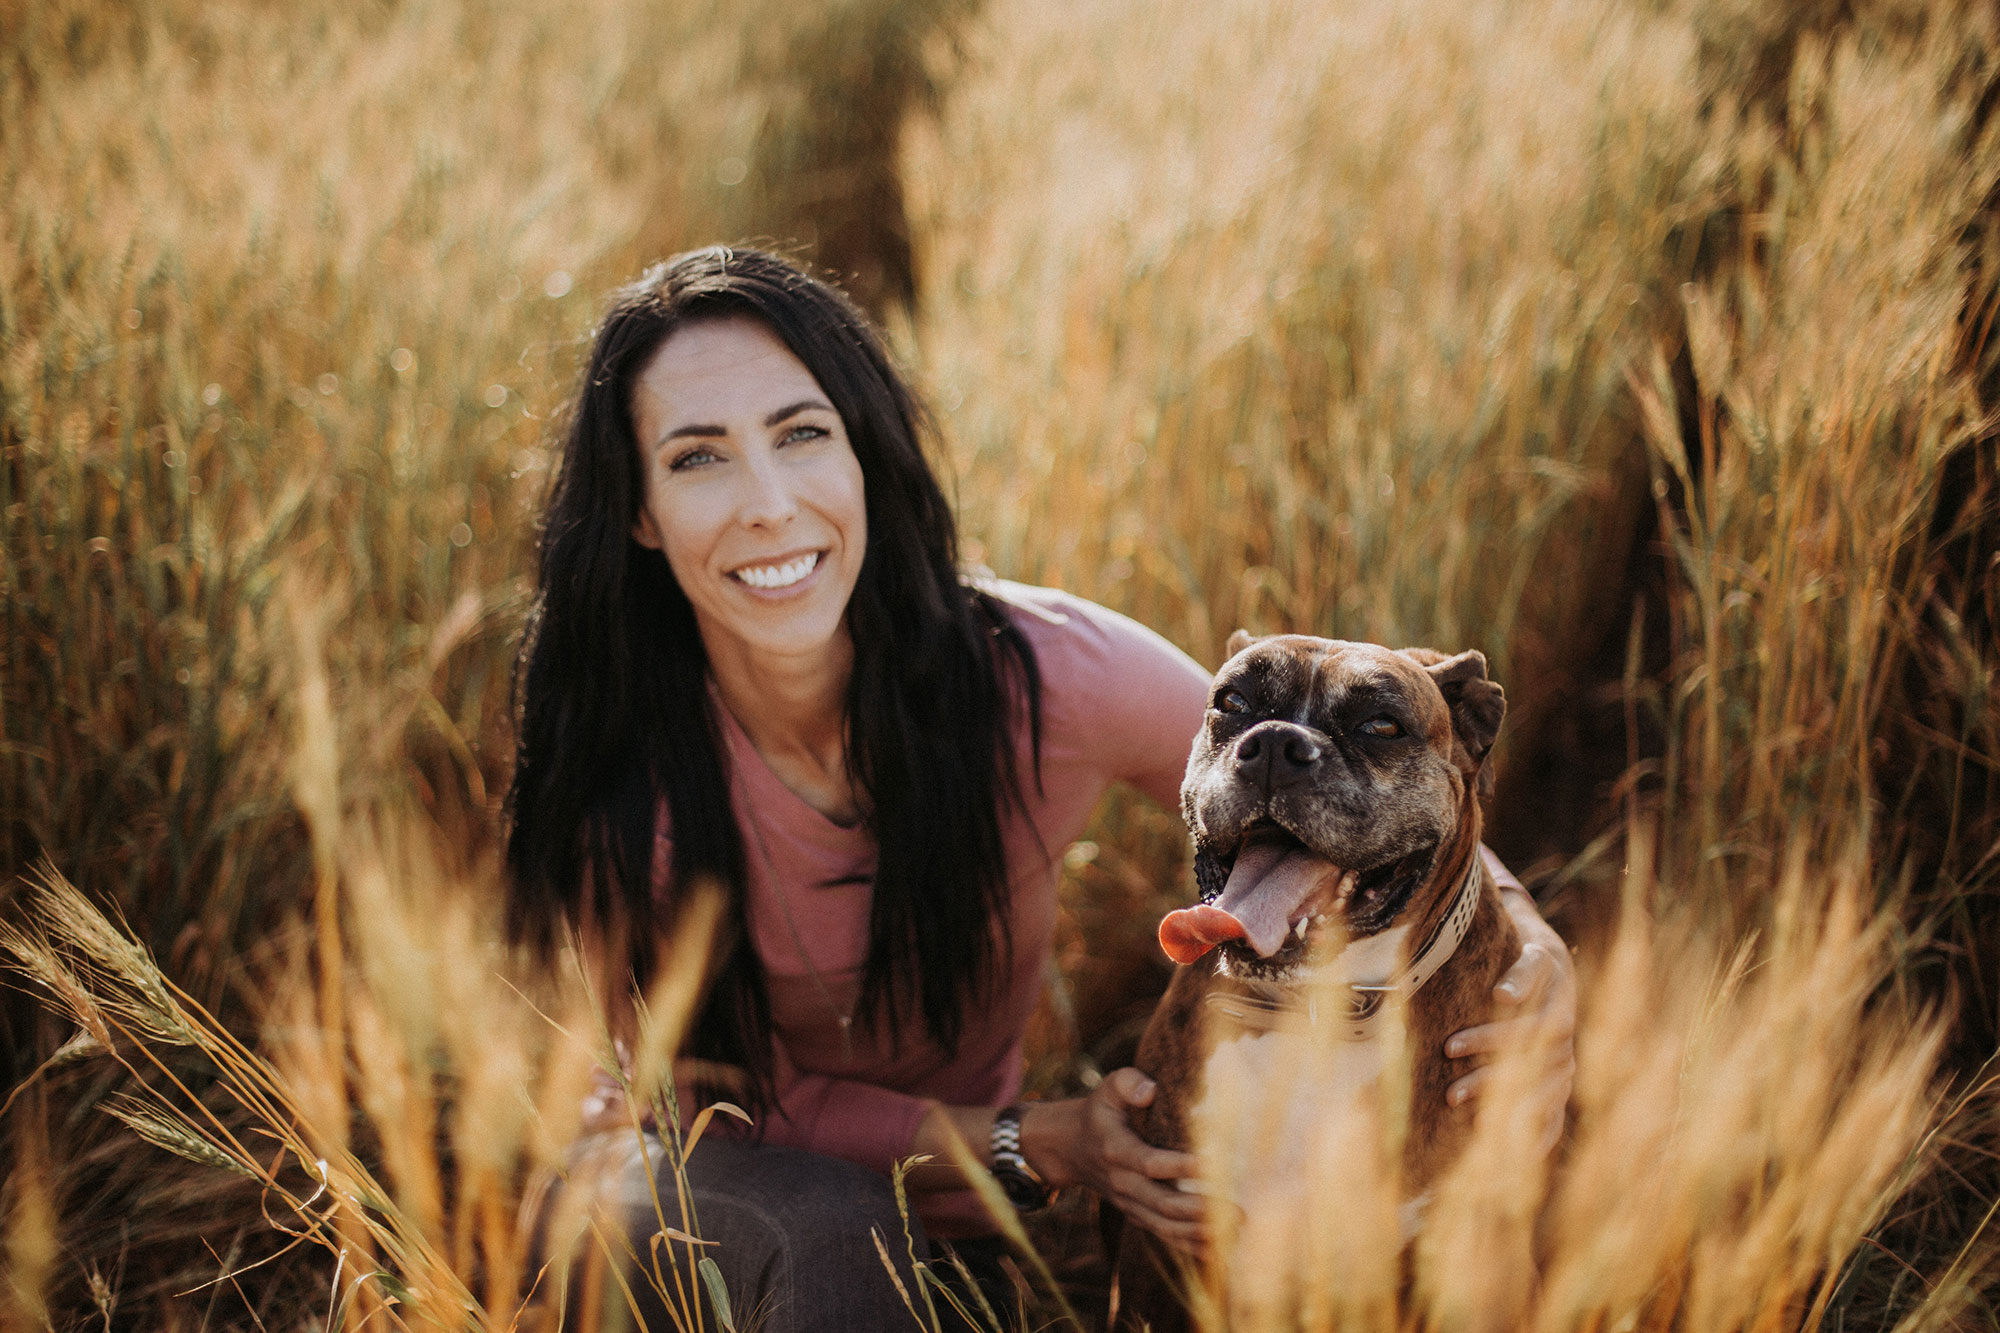 Kim Keller smiling in a field with her dog.